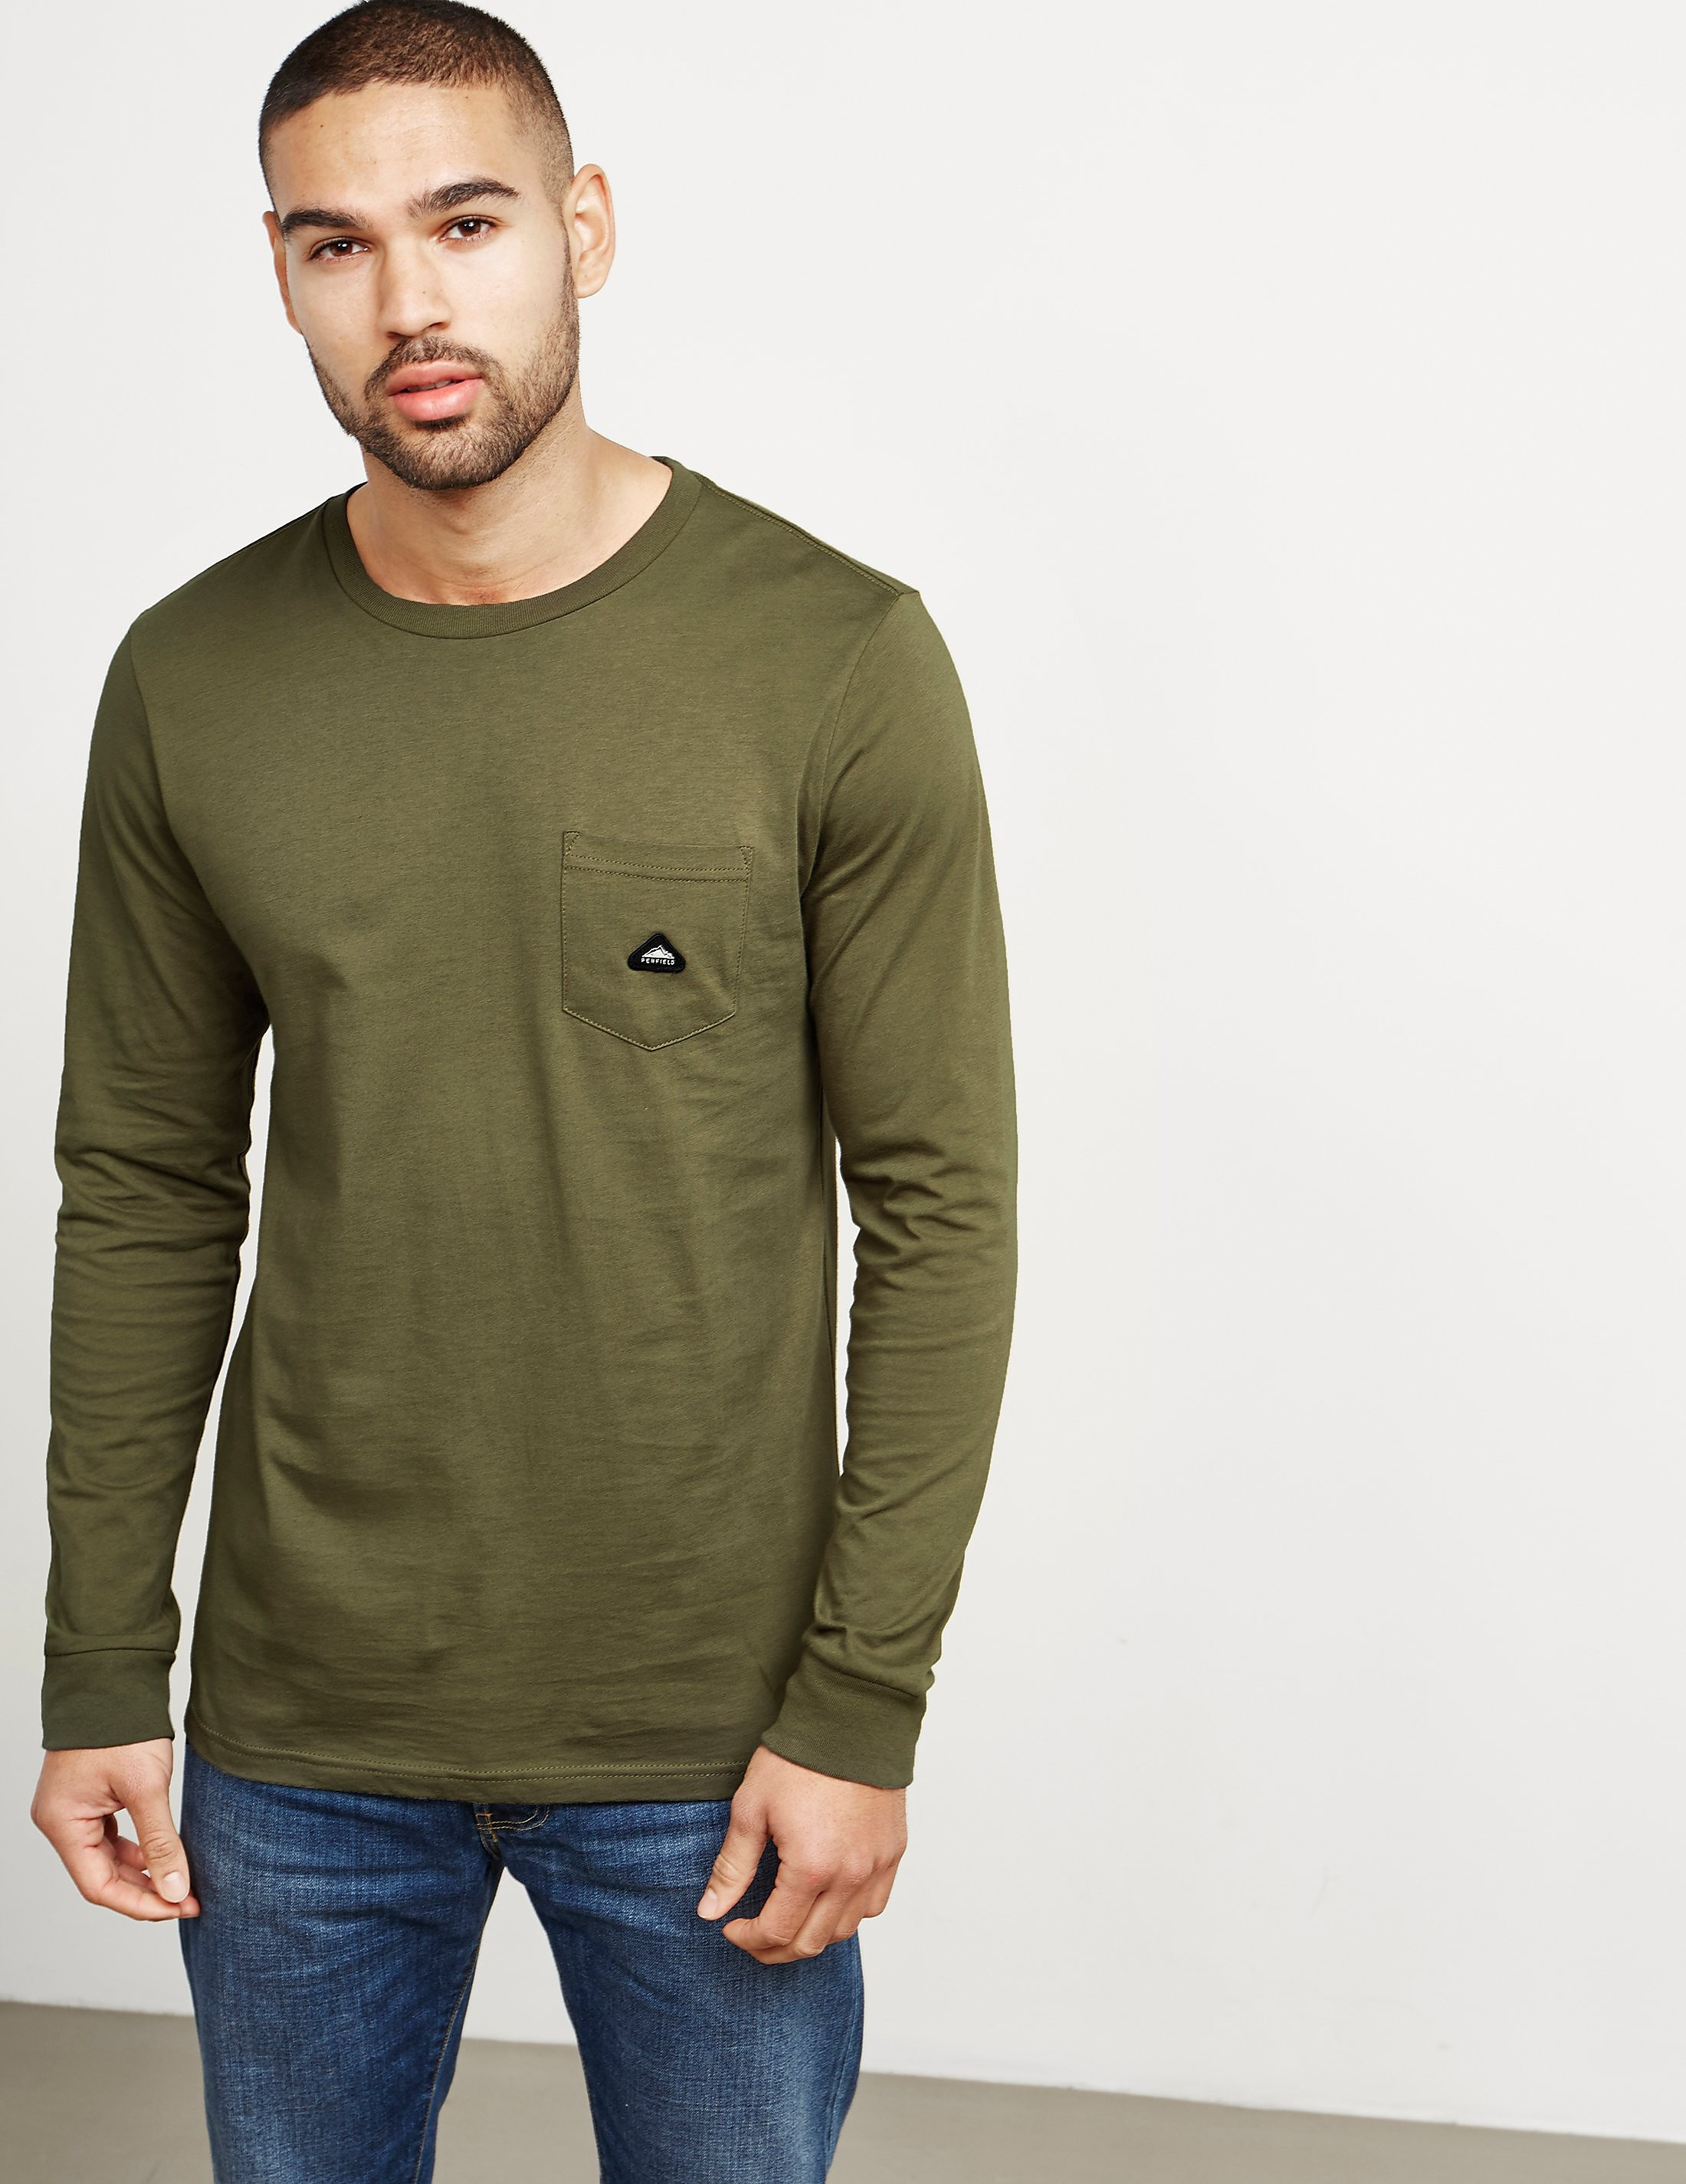 Penfield Northbridge Long Sleeve T-Shirt